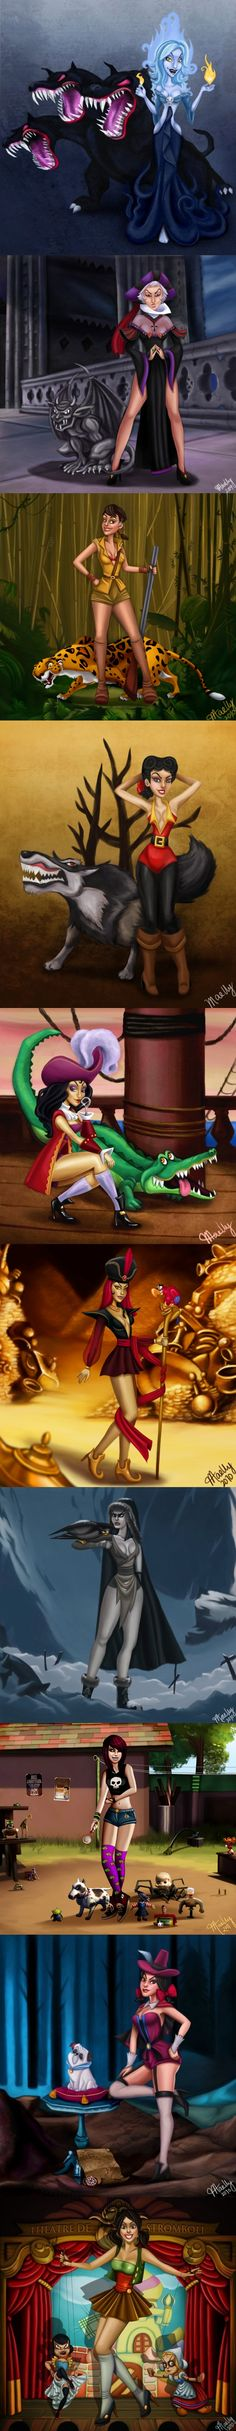 #disney villains of the female version